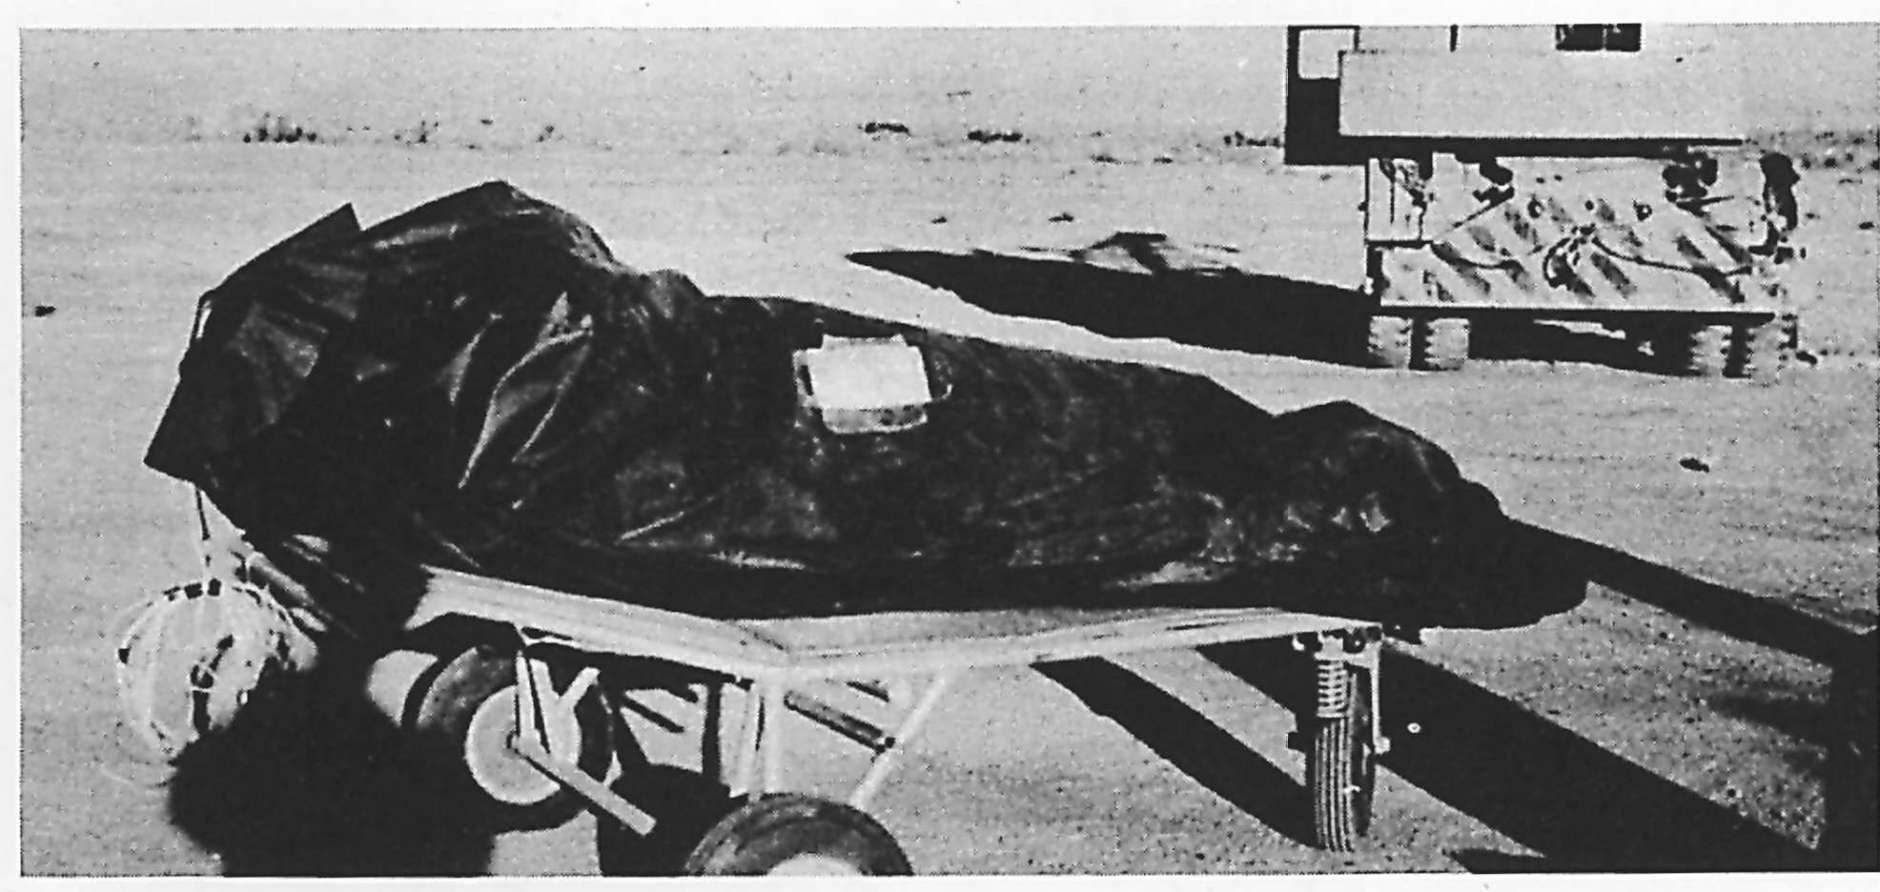 "FILE--This photo is from the Air Force's ""The Roswell Report,"" released Tuesday, June 24, 1997, which discusses the UFO incident in Roswell, N.M. in 1947. On balloon flights, test dummies were used and placed in insulation bags to protect temperature sensitive equipment. These bags may have been described by at least one witness as ""body bags"" used to recover alien victims from the crash of a flying saucer. The 231-page report, released on the eve of the 50th anniversary of the Roswell, N.M., UFO incident, is meant to close to book on longstanding rumors that the Air Force recovered a flying saucer and extraterrestrial bodies near Roswell. (AP Photo/Air Force, File)"